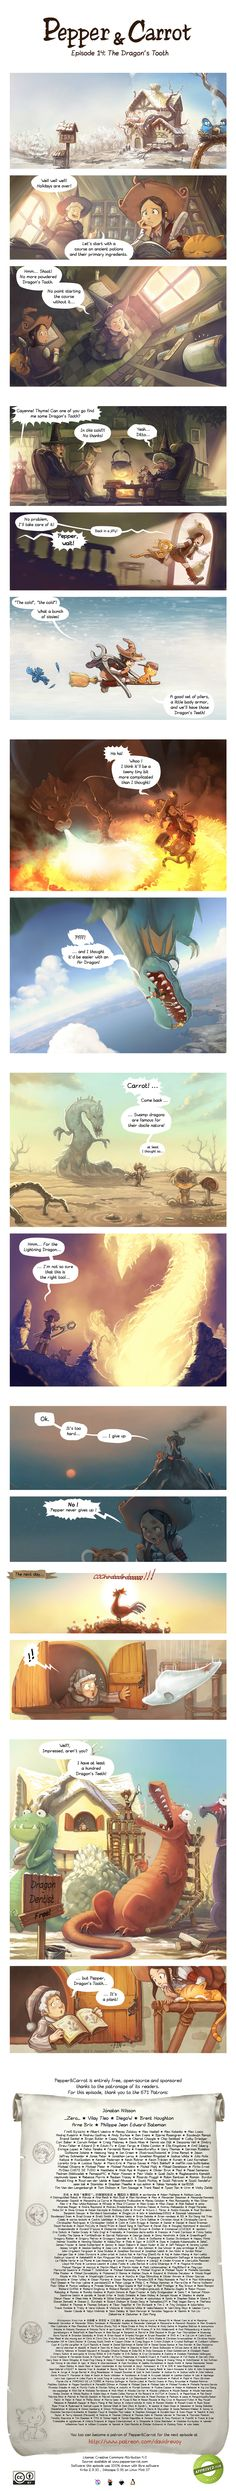 Episode 14 : The Dragon's Tooth by Deevad on DeviantArt